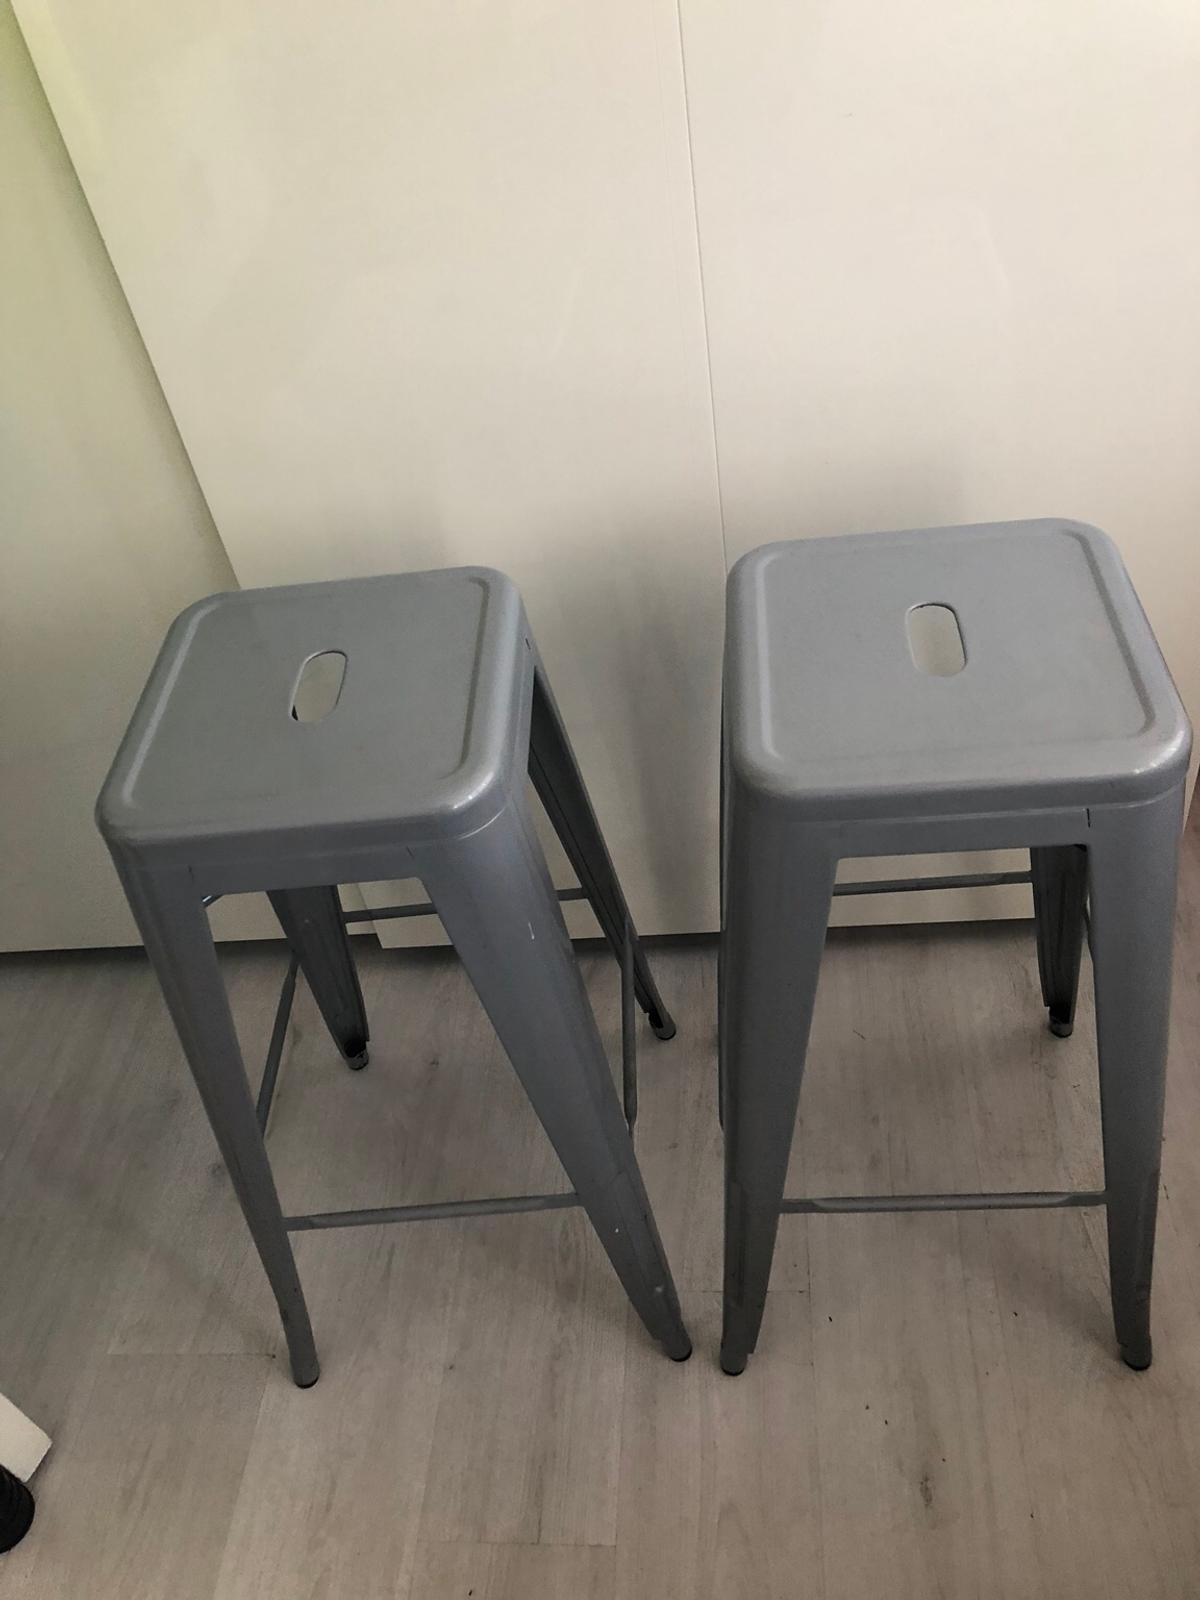 Remarkable Tolix Style Bar Stools Pair Grey Gmtry Best Dining Table And Chair Ideas Images Gmtryco